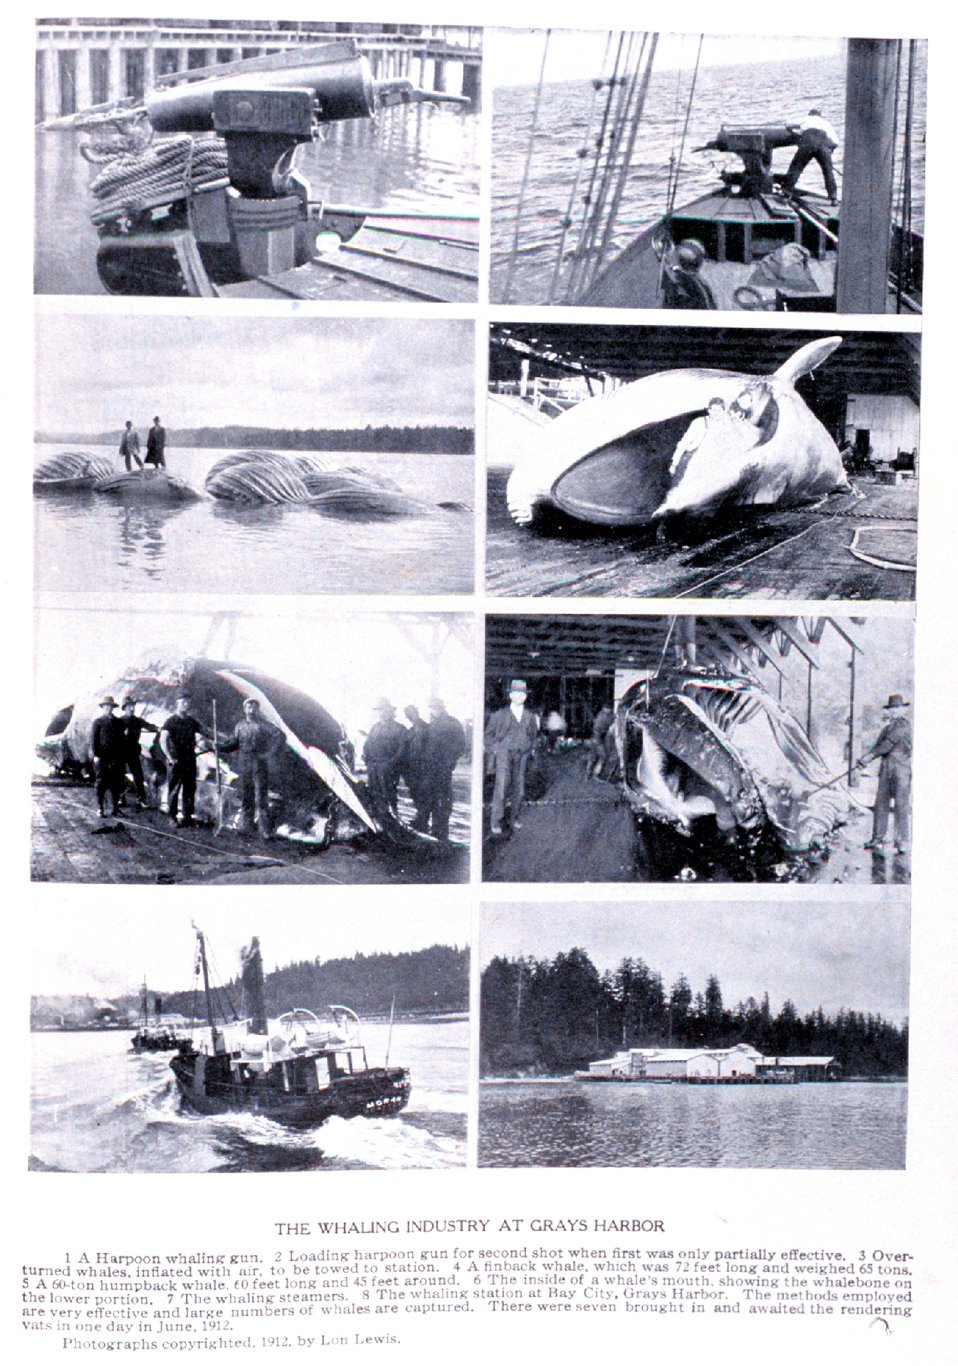 'The Whaling Industry at Grays Harbor'. In:  'Puget Sound and Western Washington  Cities-Towns Scenery', by Robert A. Reid, Robert A. Reid Publisher, Seattle, 1912.  P. 157.